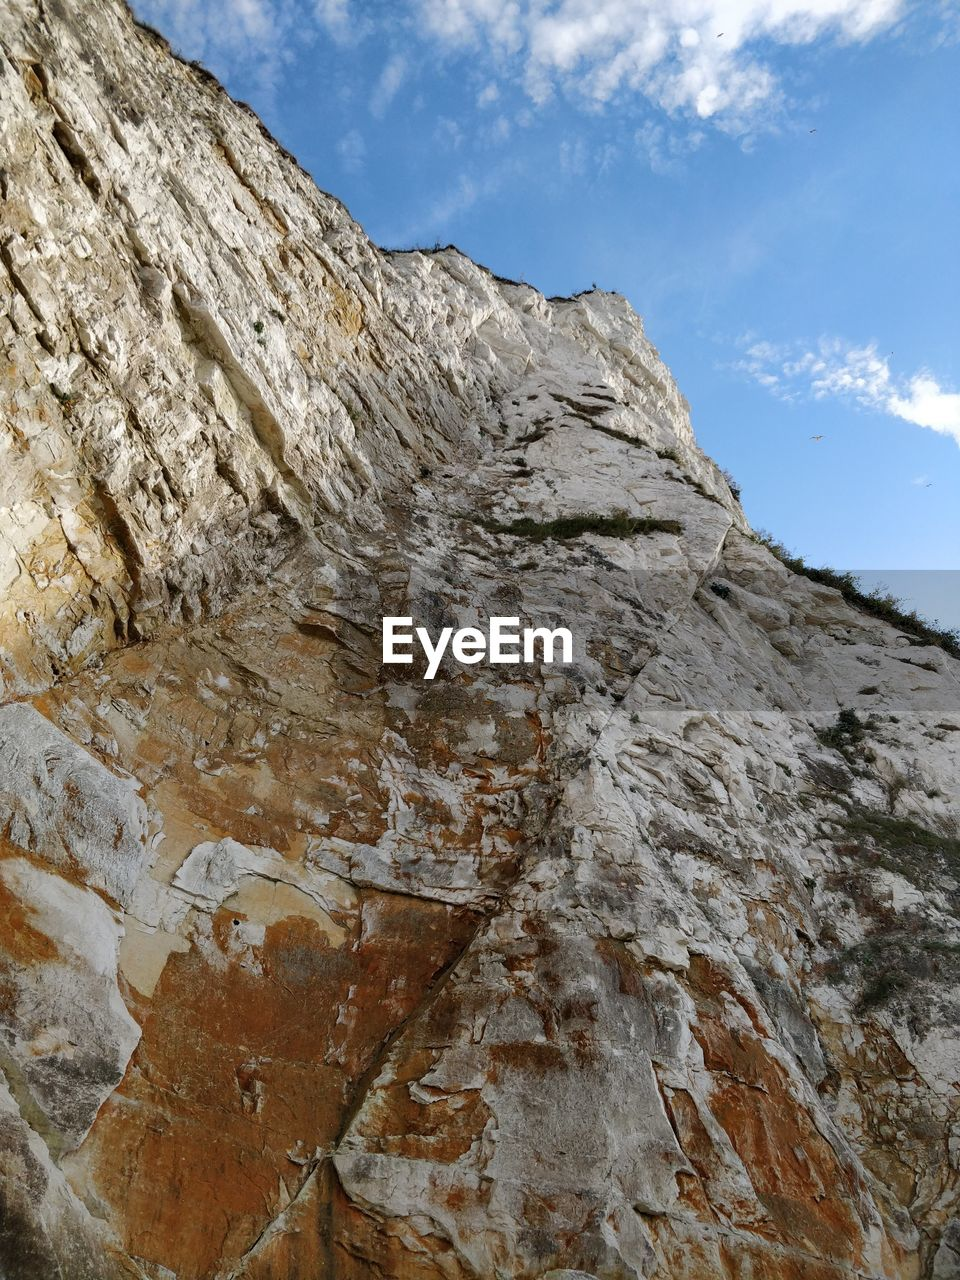 sky, rock, cloud - sky, rock formation, mountain, rock - object, low angle view, nature, day, solid, no people, beauty in nature, tranquility, geology, non-urban scene, outdoors, textured, scenics - nature, land, strength, formation, eroded, mountain peak